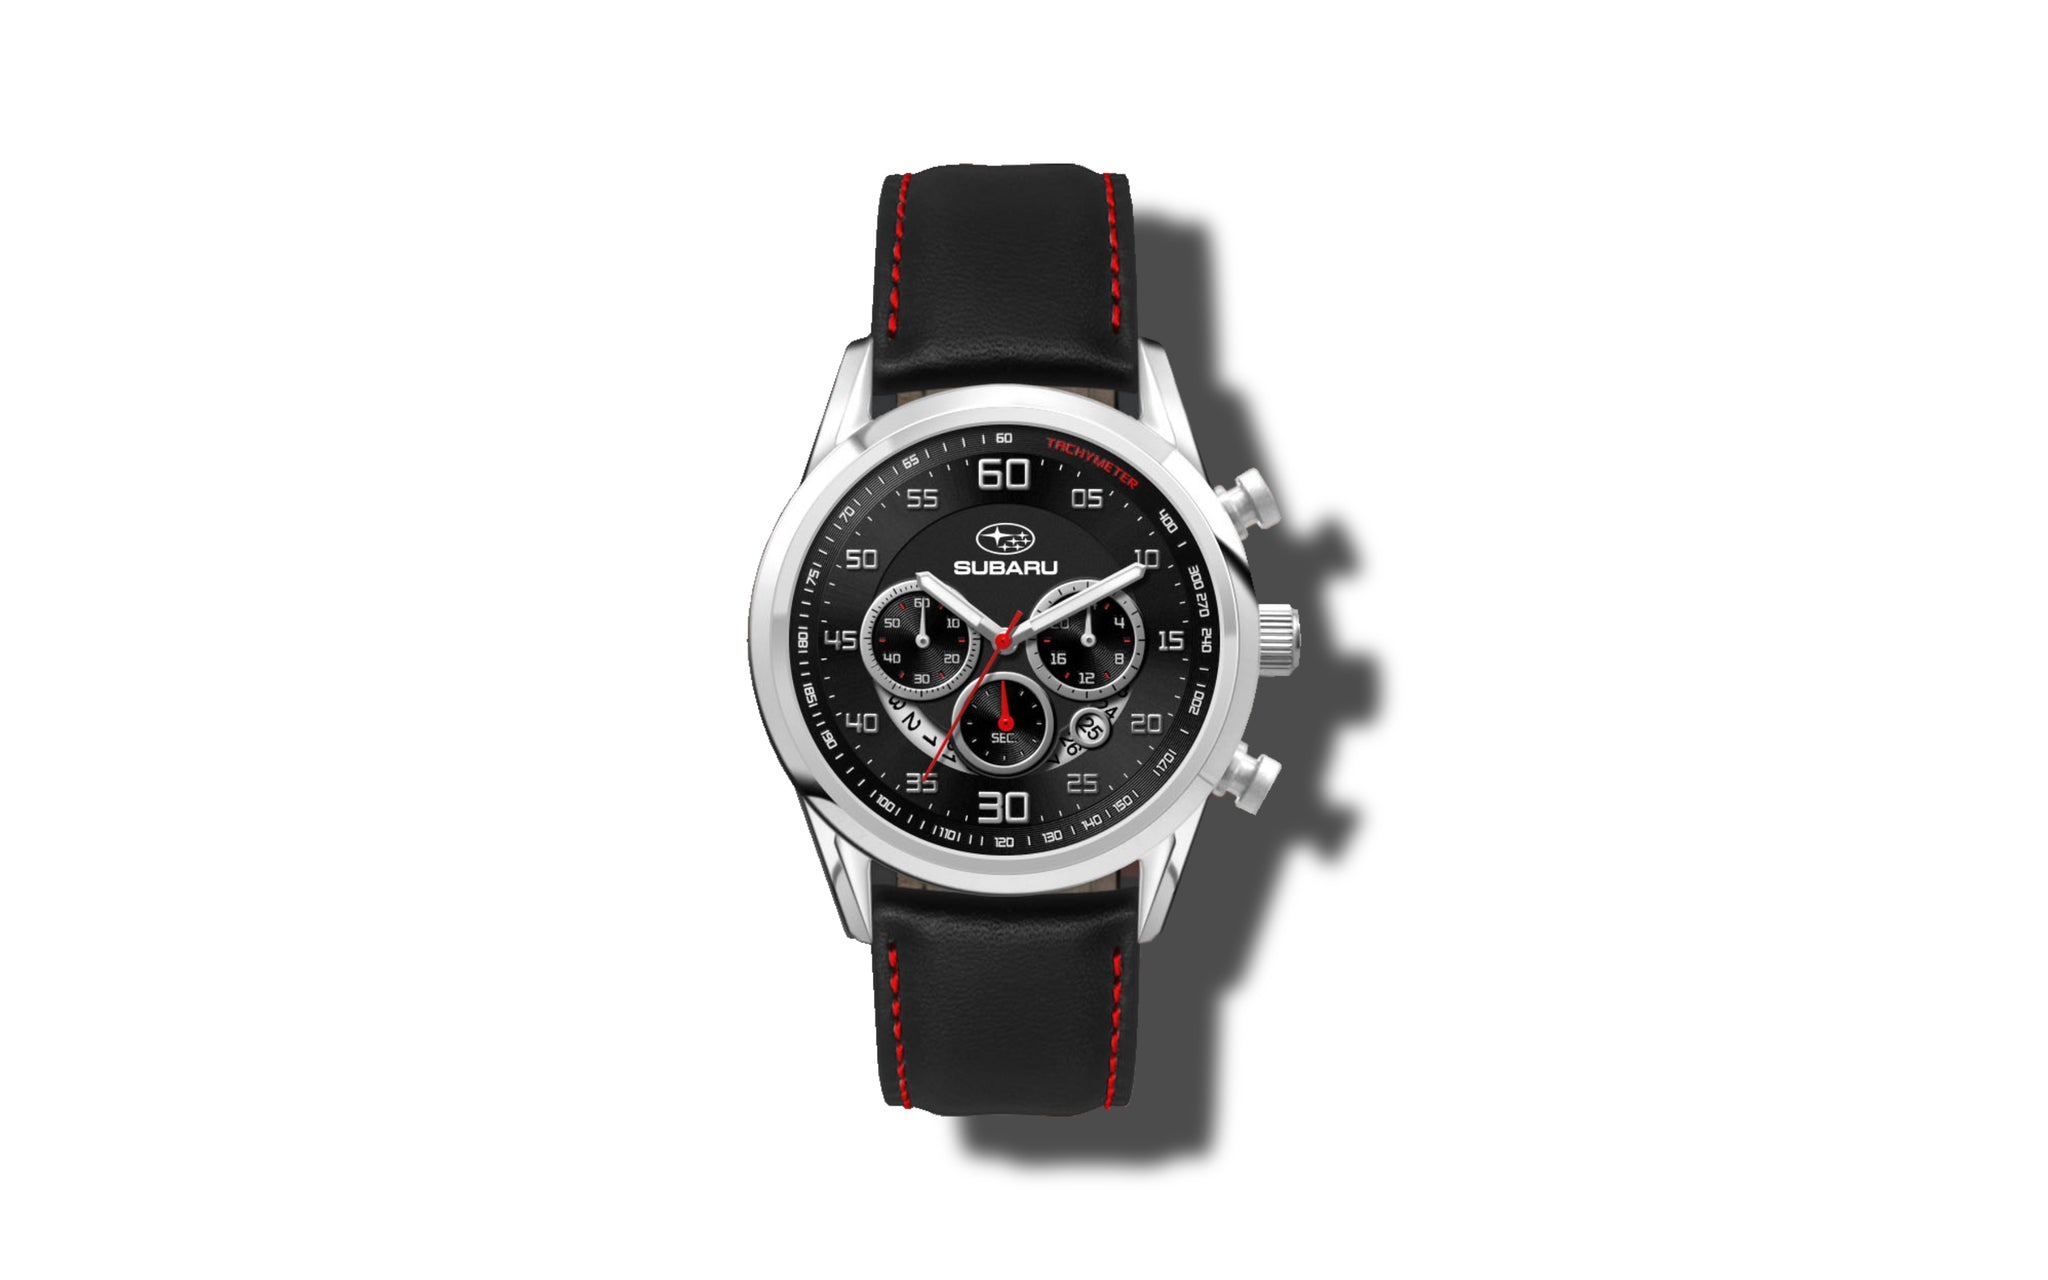 Subaru Black Leather Chronograph Watch